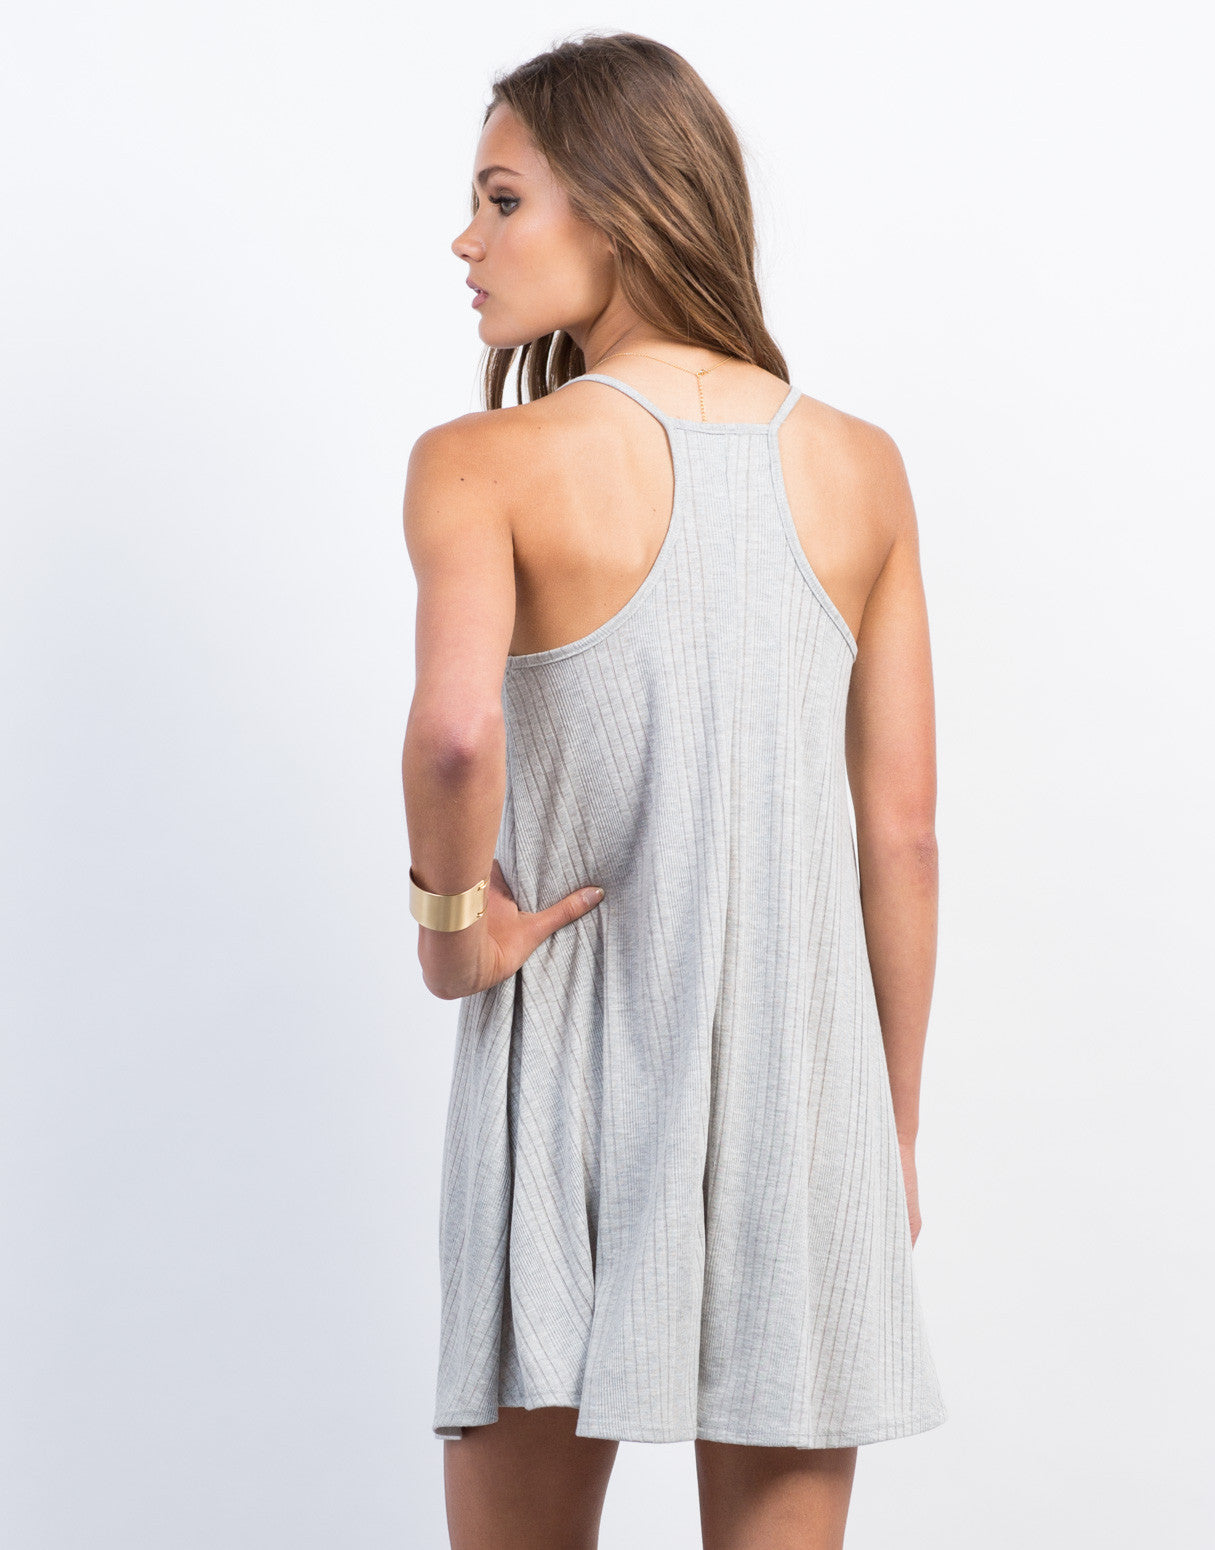 Back View of High Neck Ribbed Dress